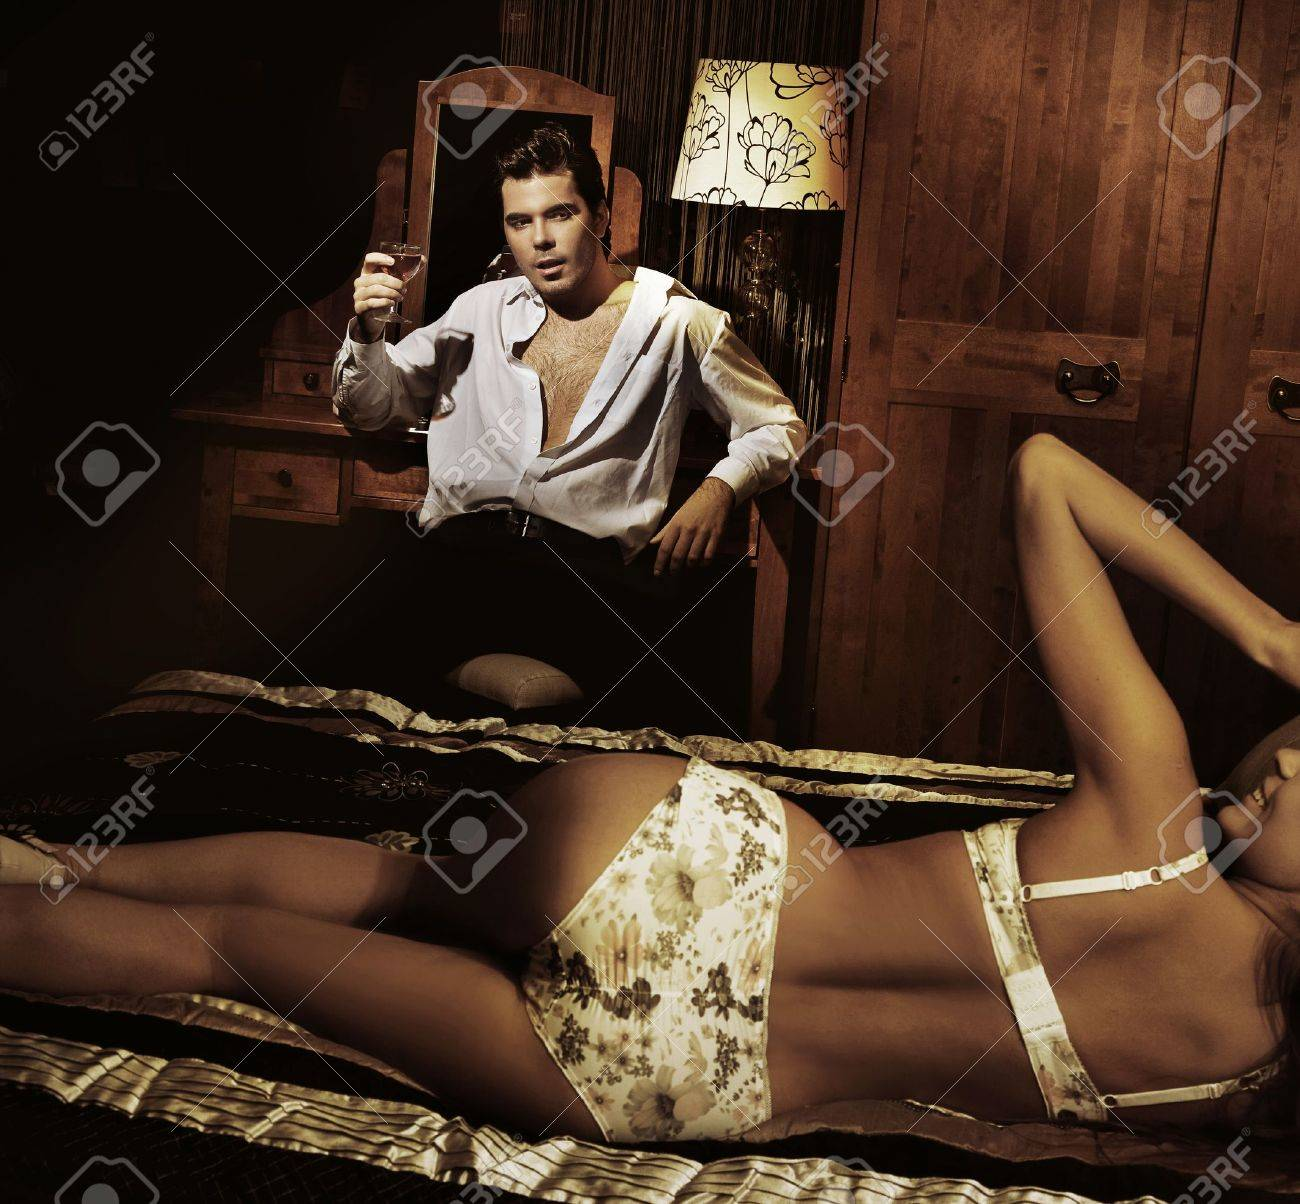 Handsome man with glass of wine with smiling girl in lingerine Stock Photo - 9336649